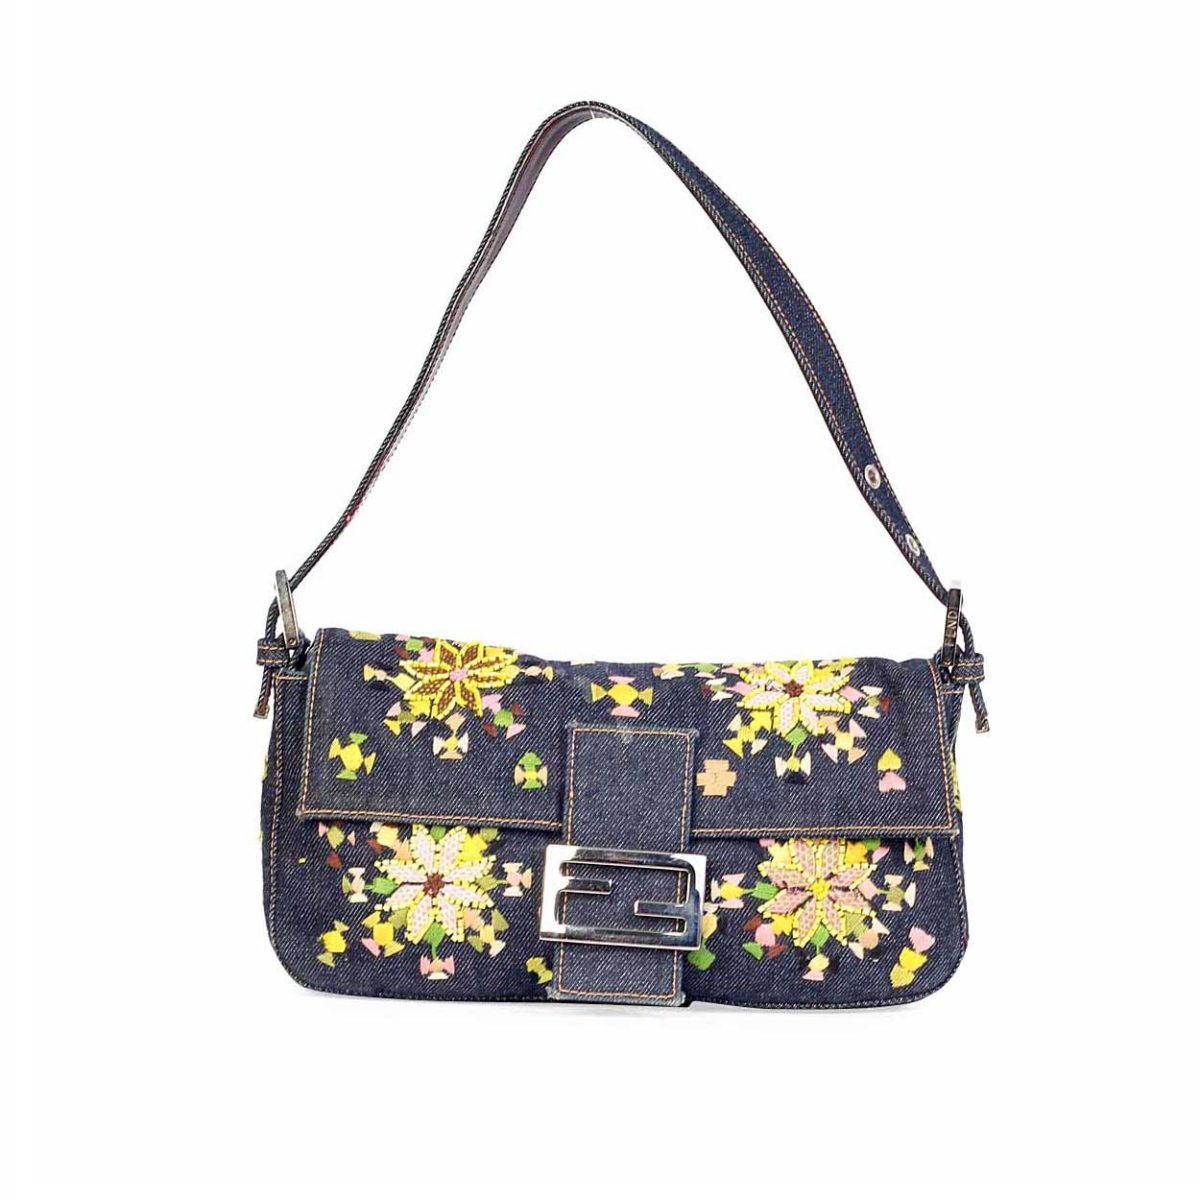 FENDI Denim Baguette with Floral Embroidery & Beads